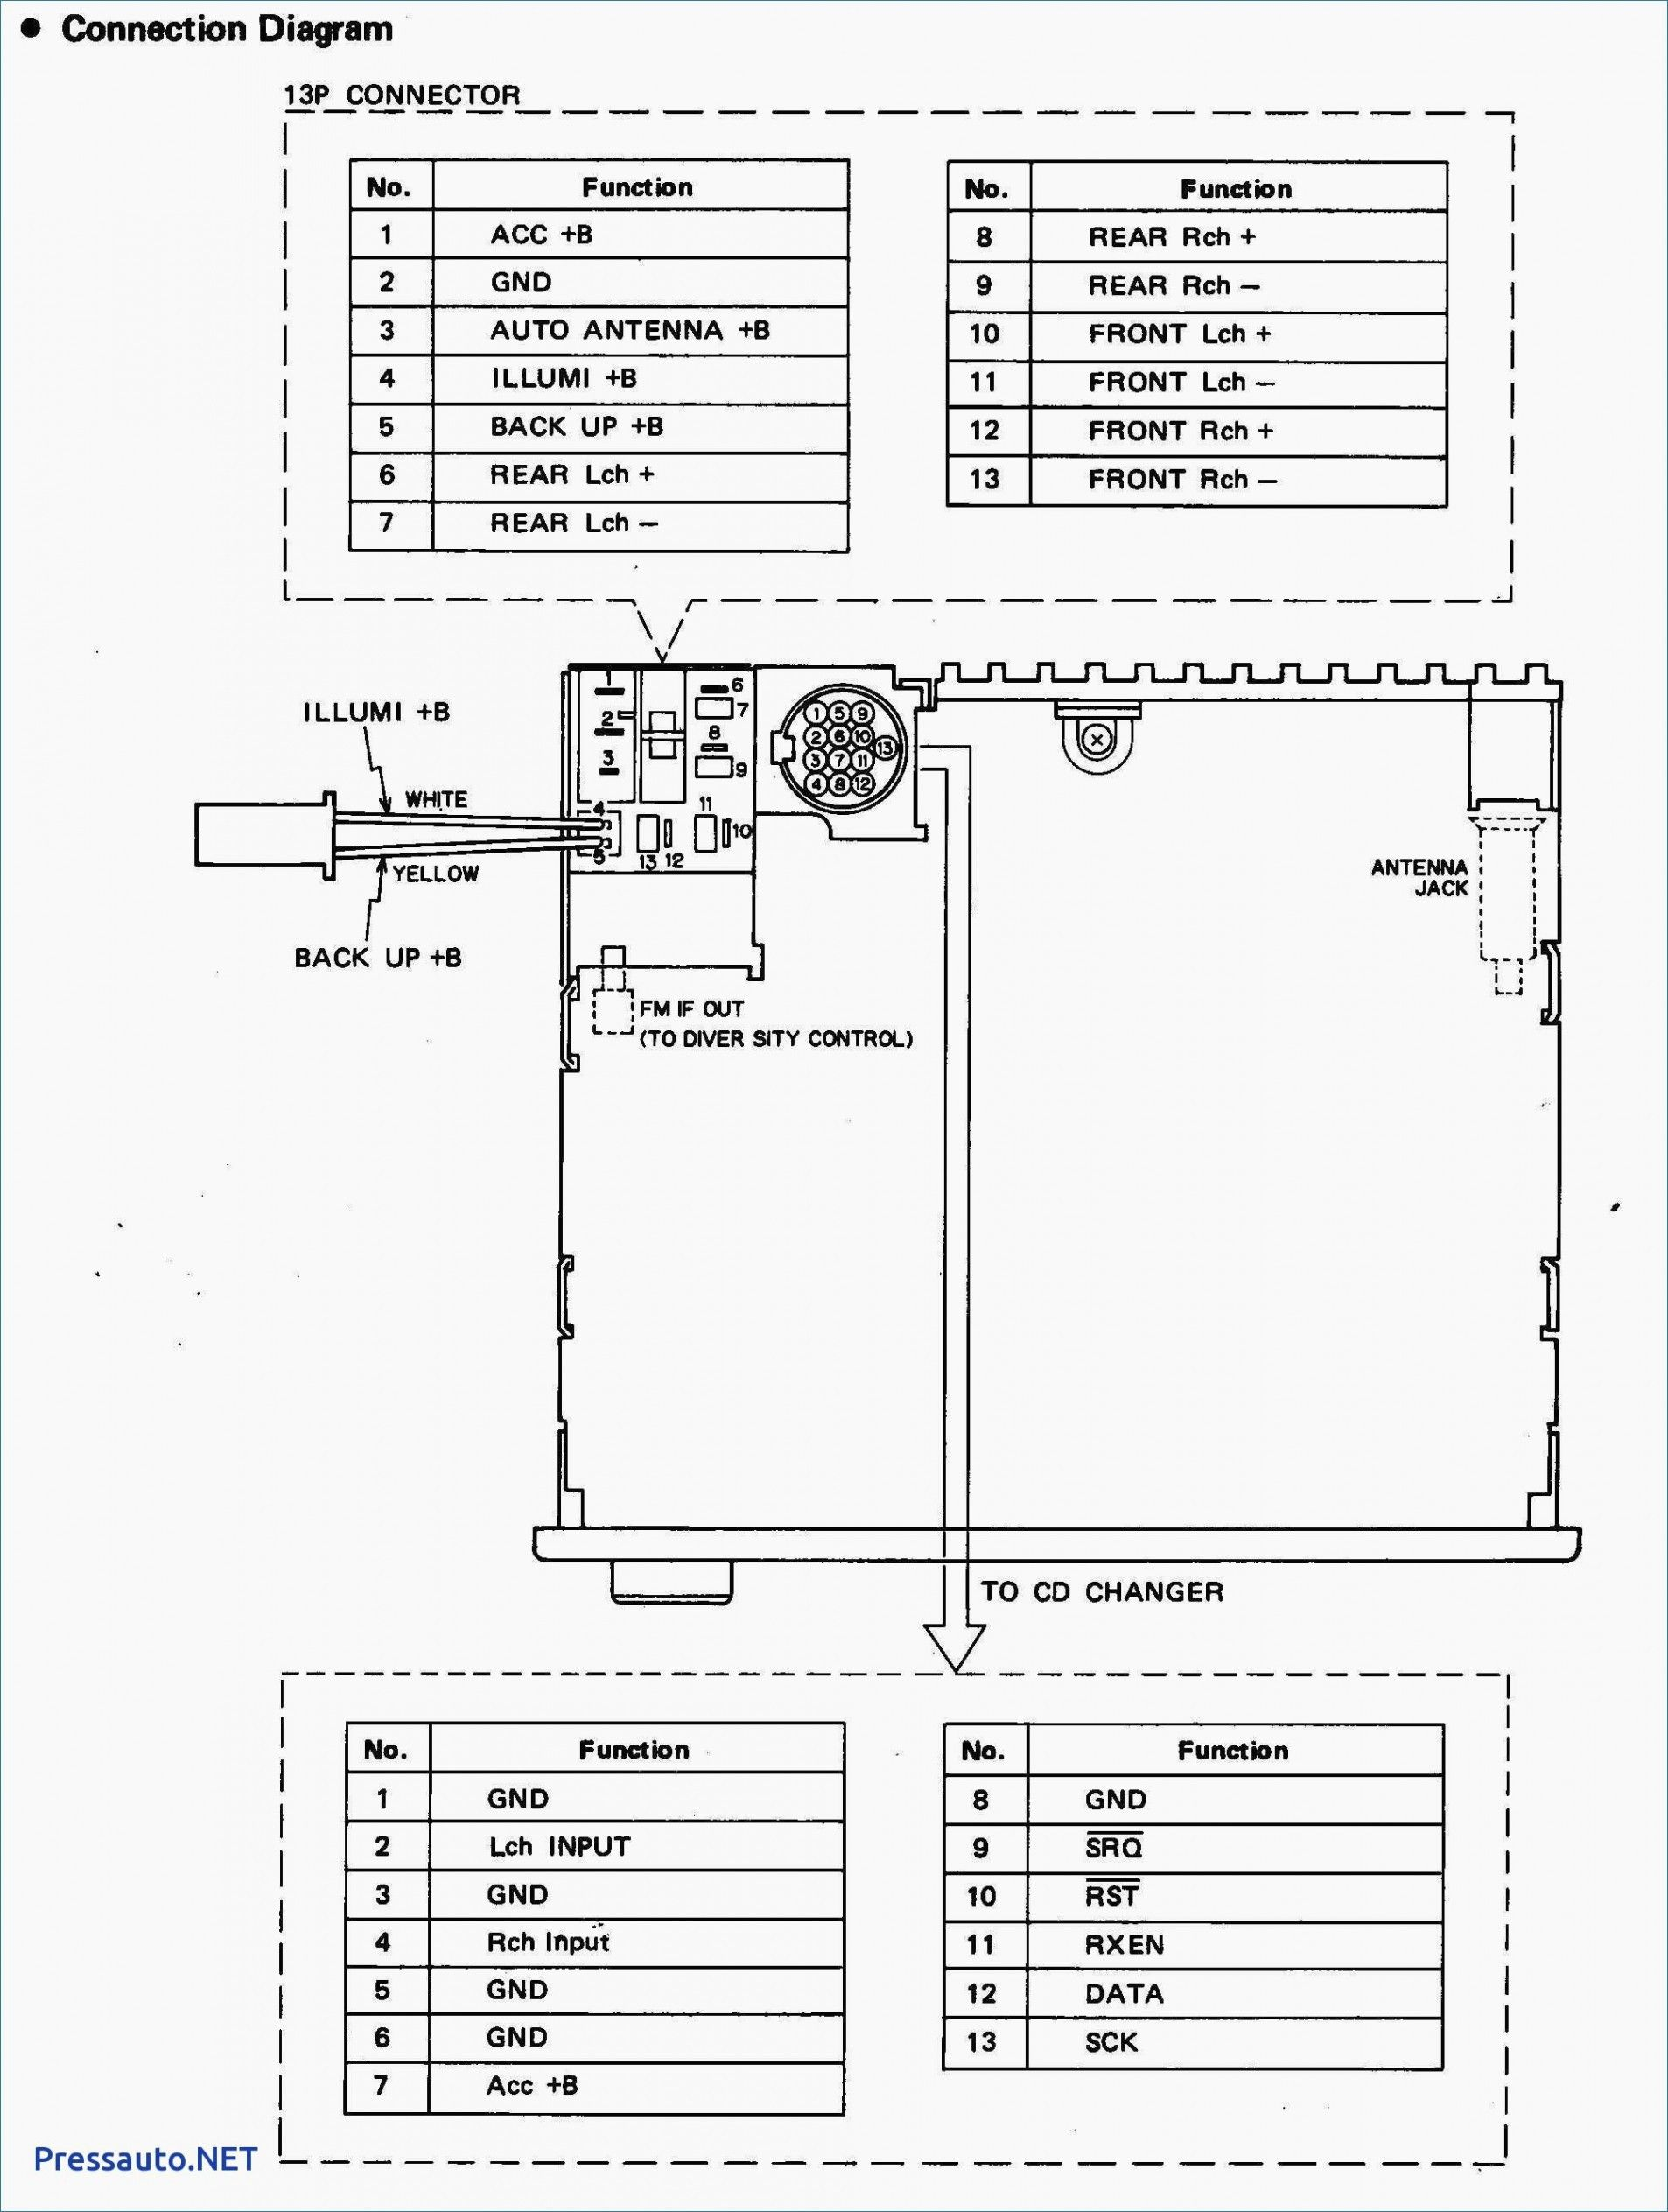 Bmw 325i Stereo Wiring Diagrams 05 Ford E350 Fuse Diagram